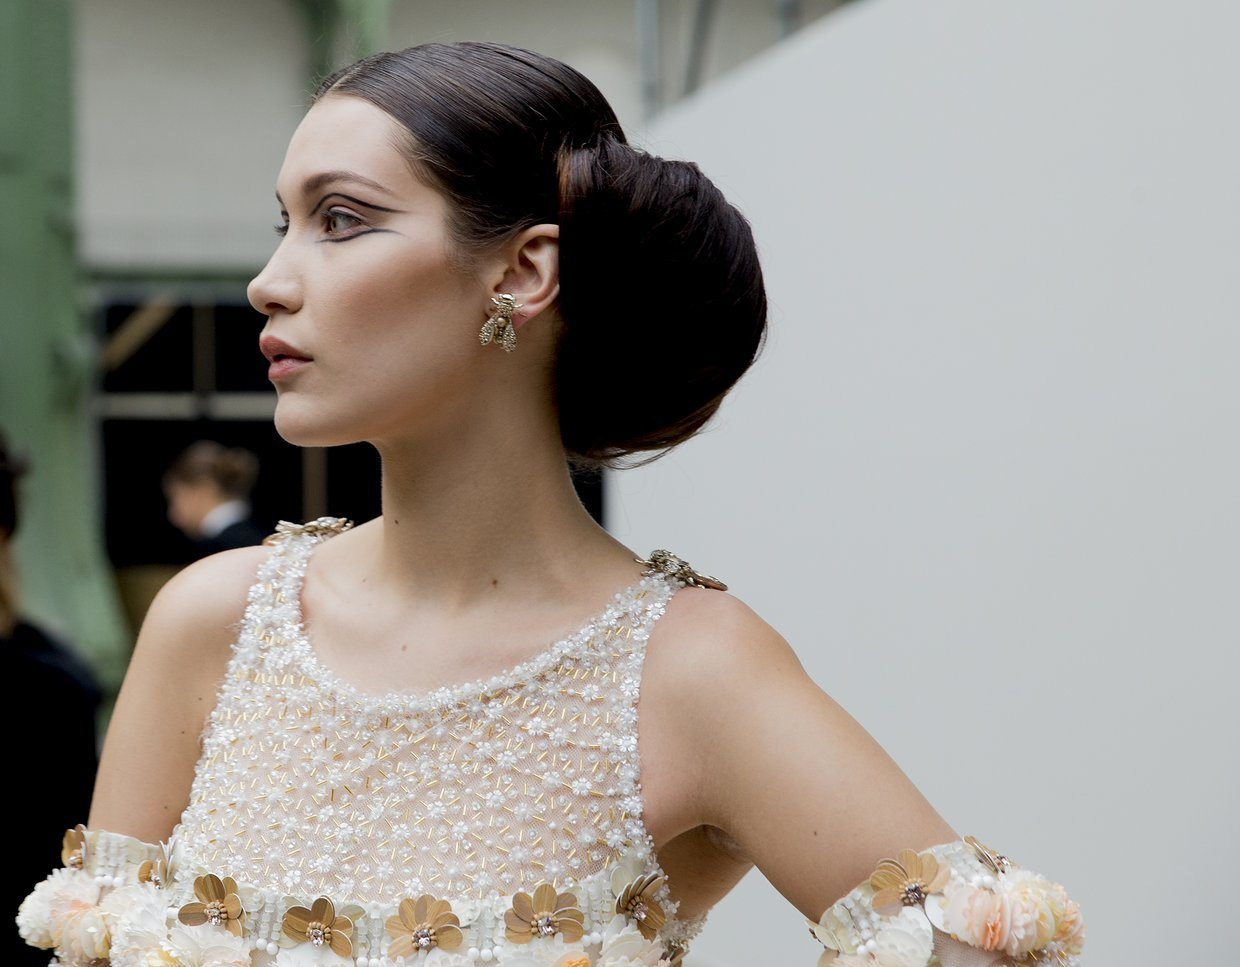 chanel-spring-2016-couture-backstage-kevin-tachman-20